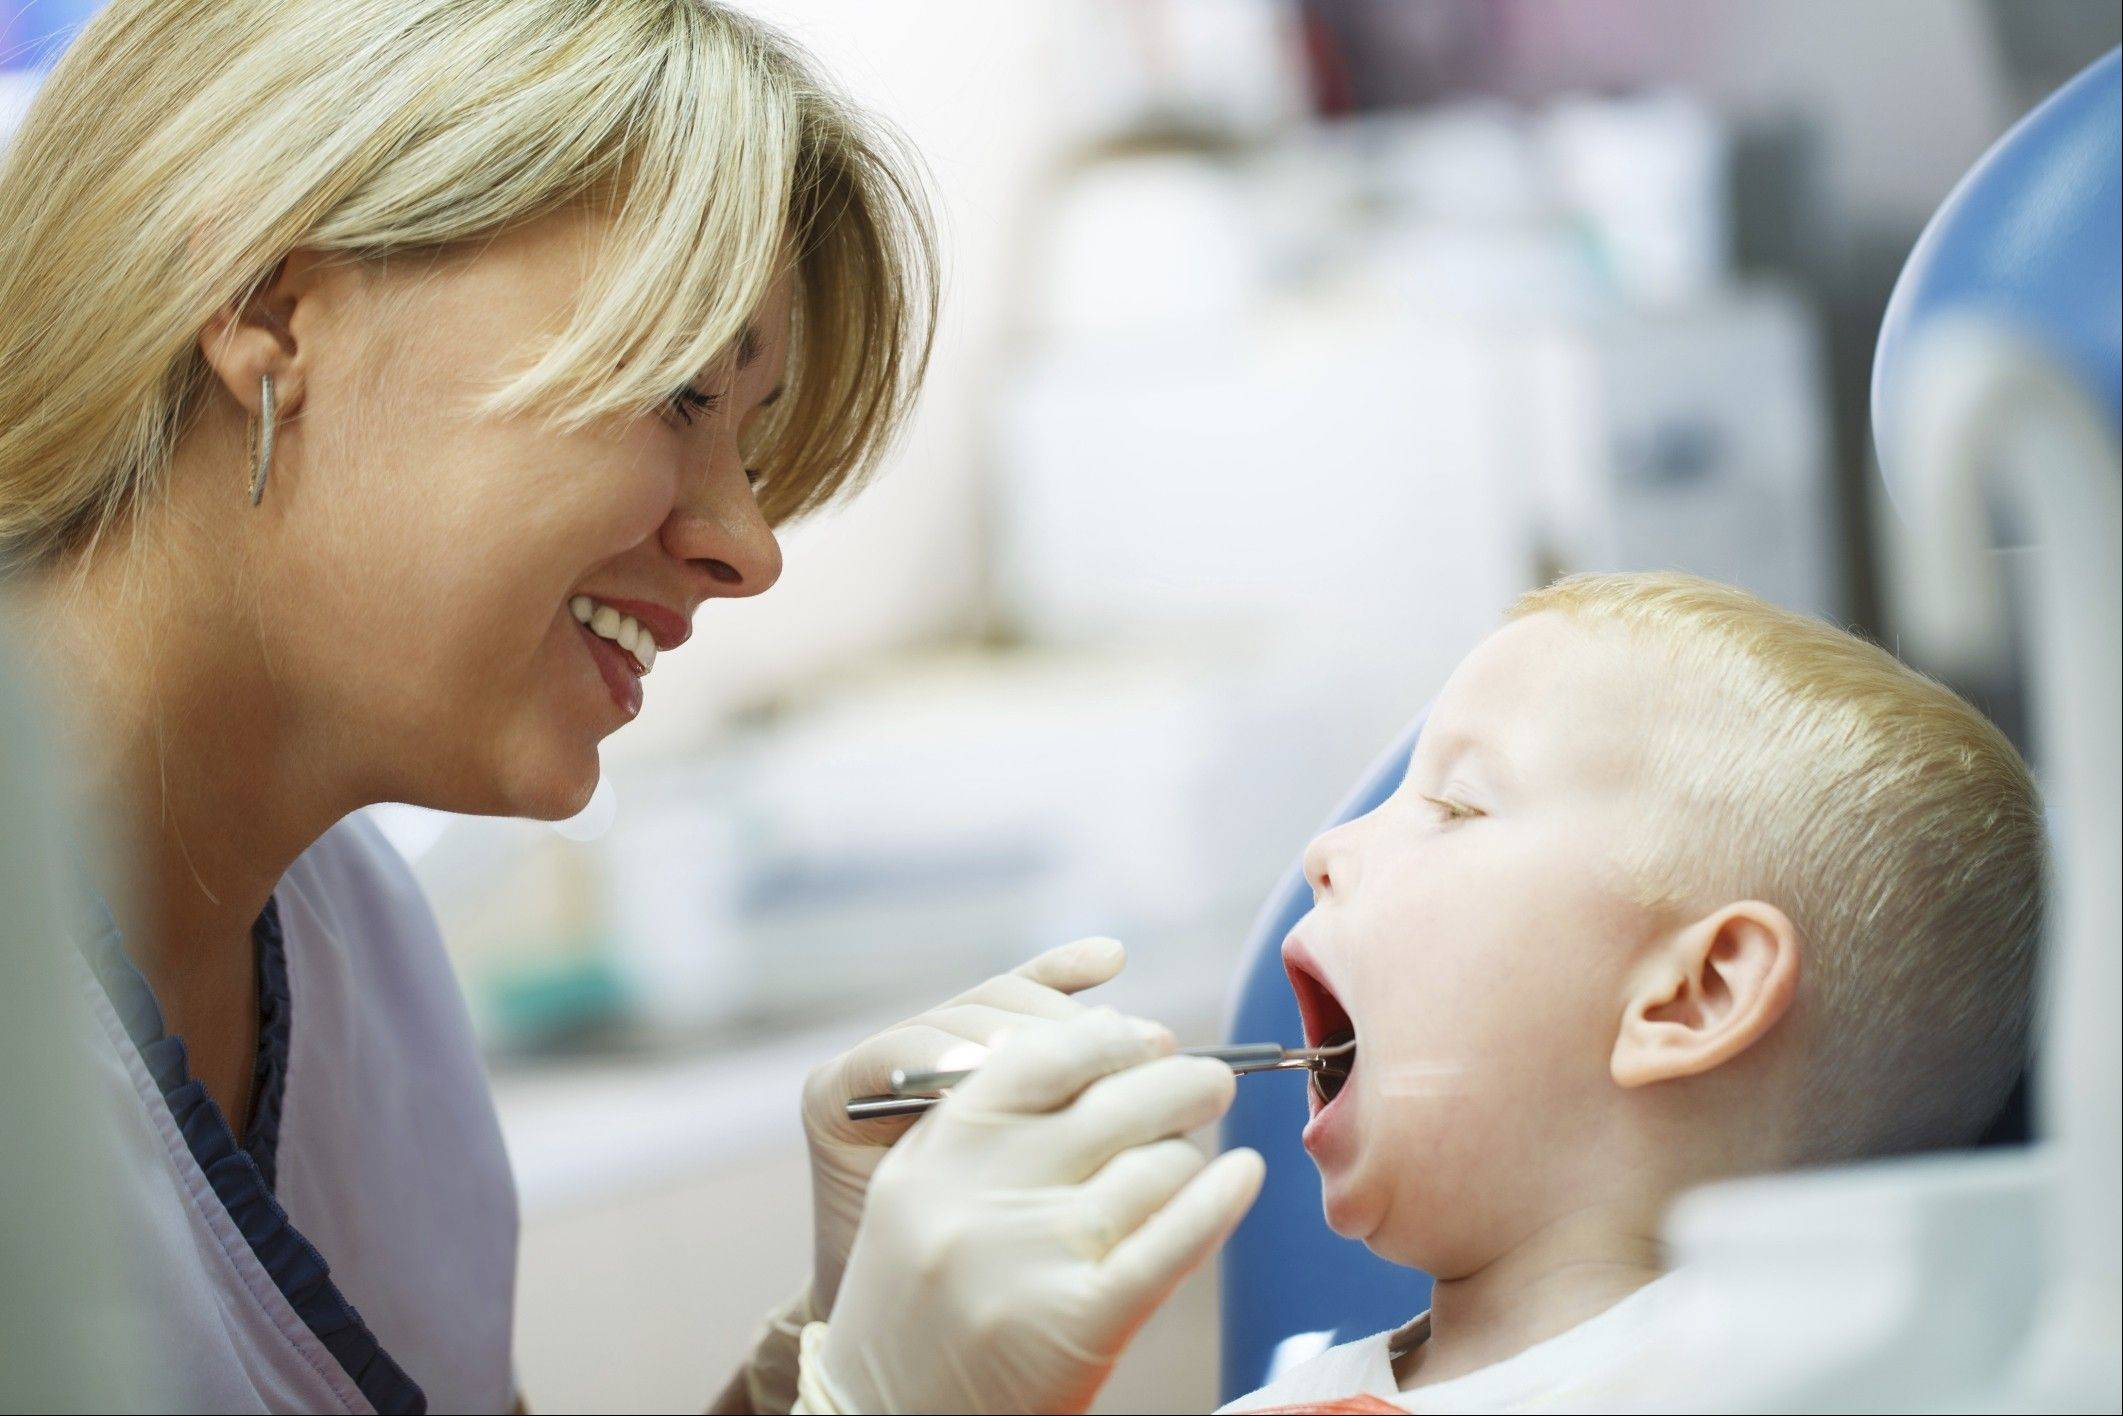 Dental care for children can be complicated, especially under the new health-care plans.